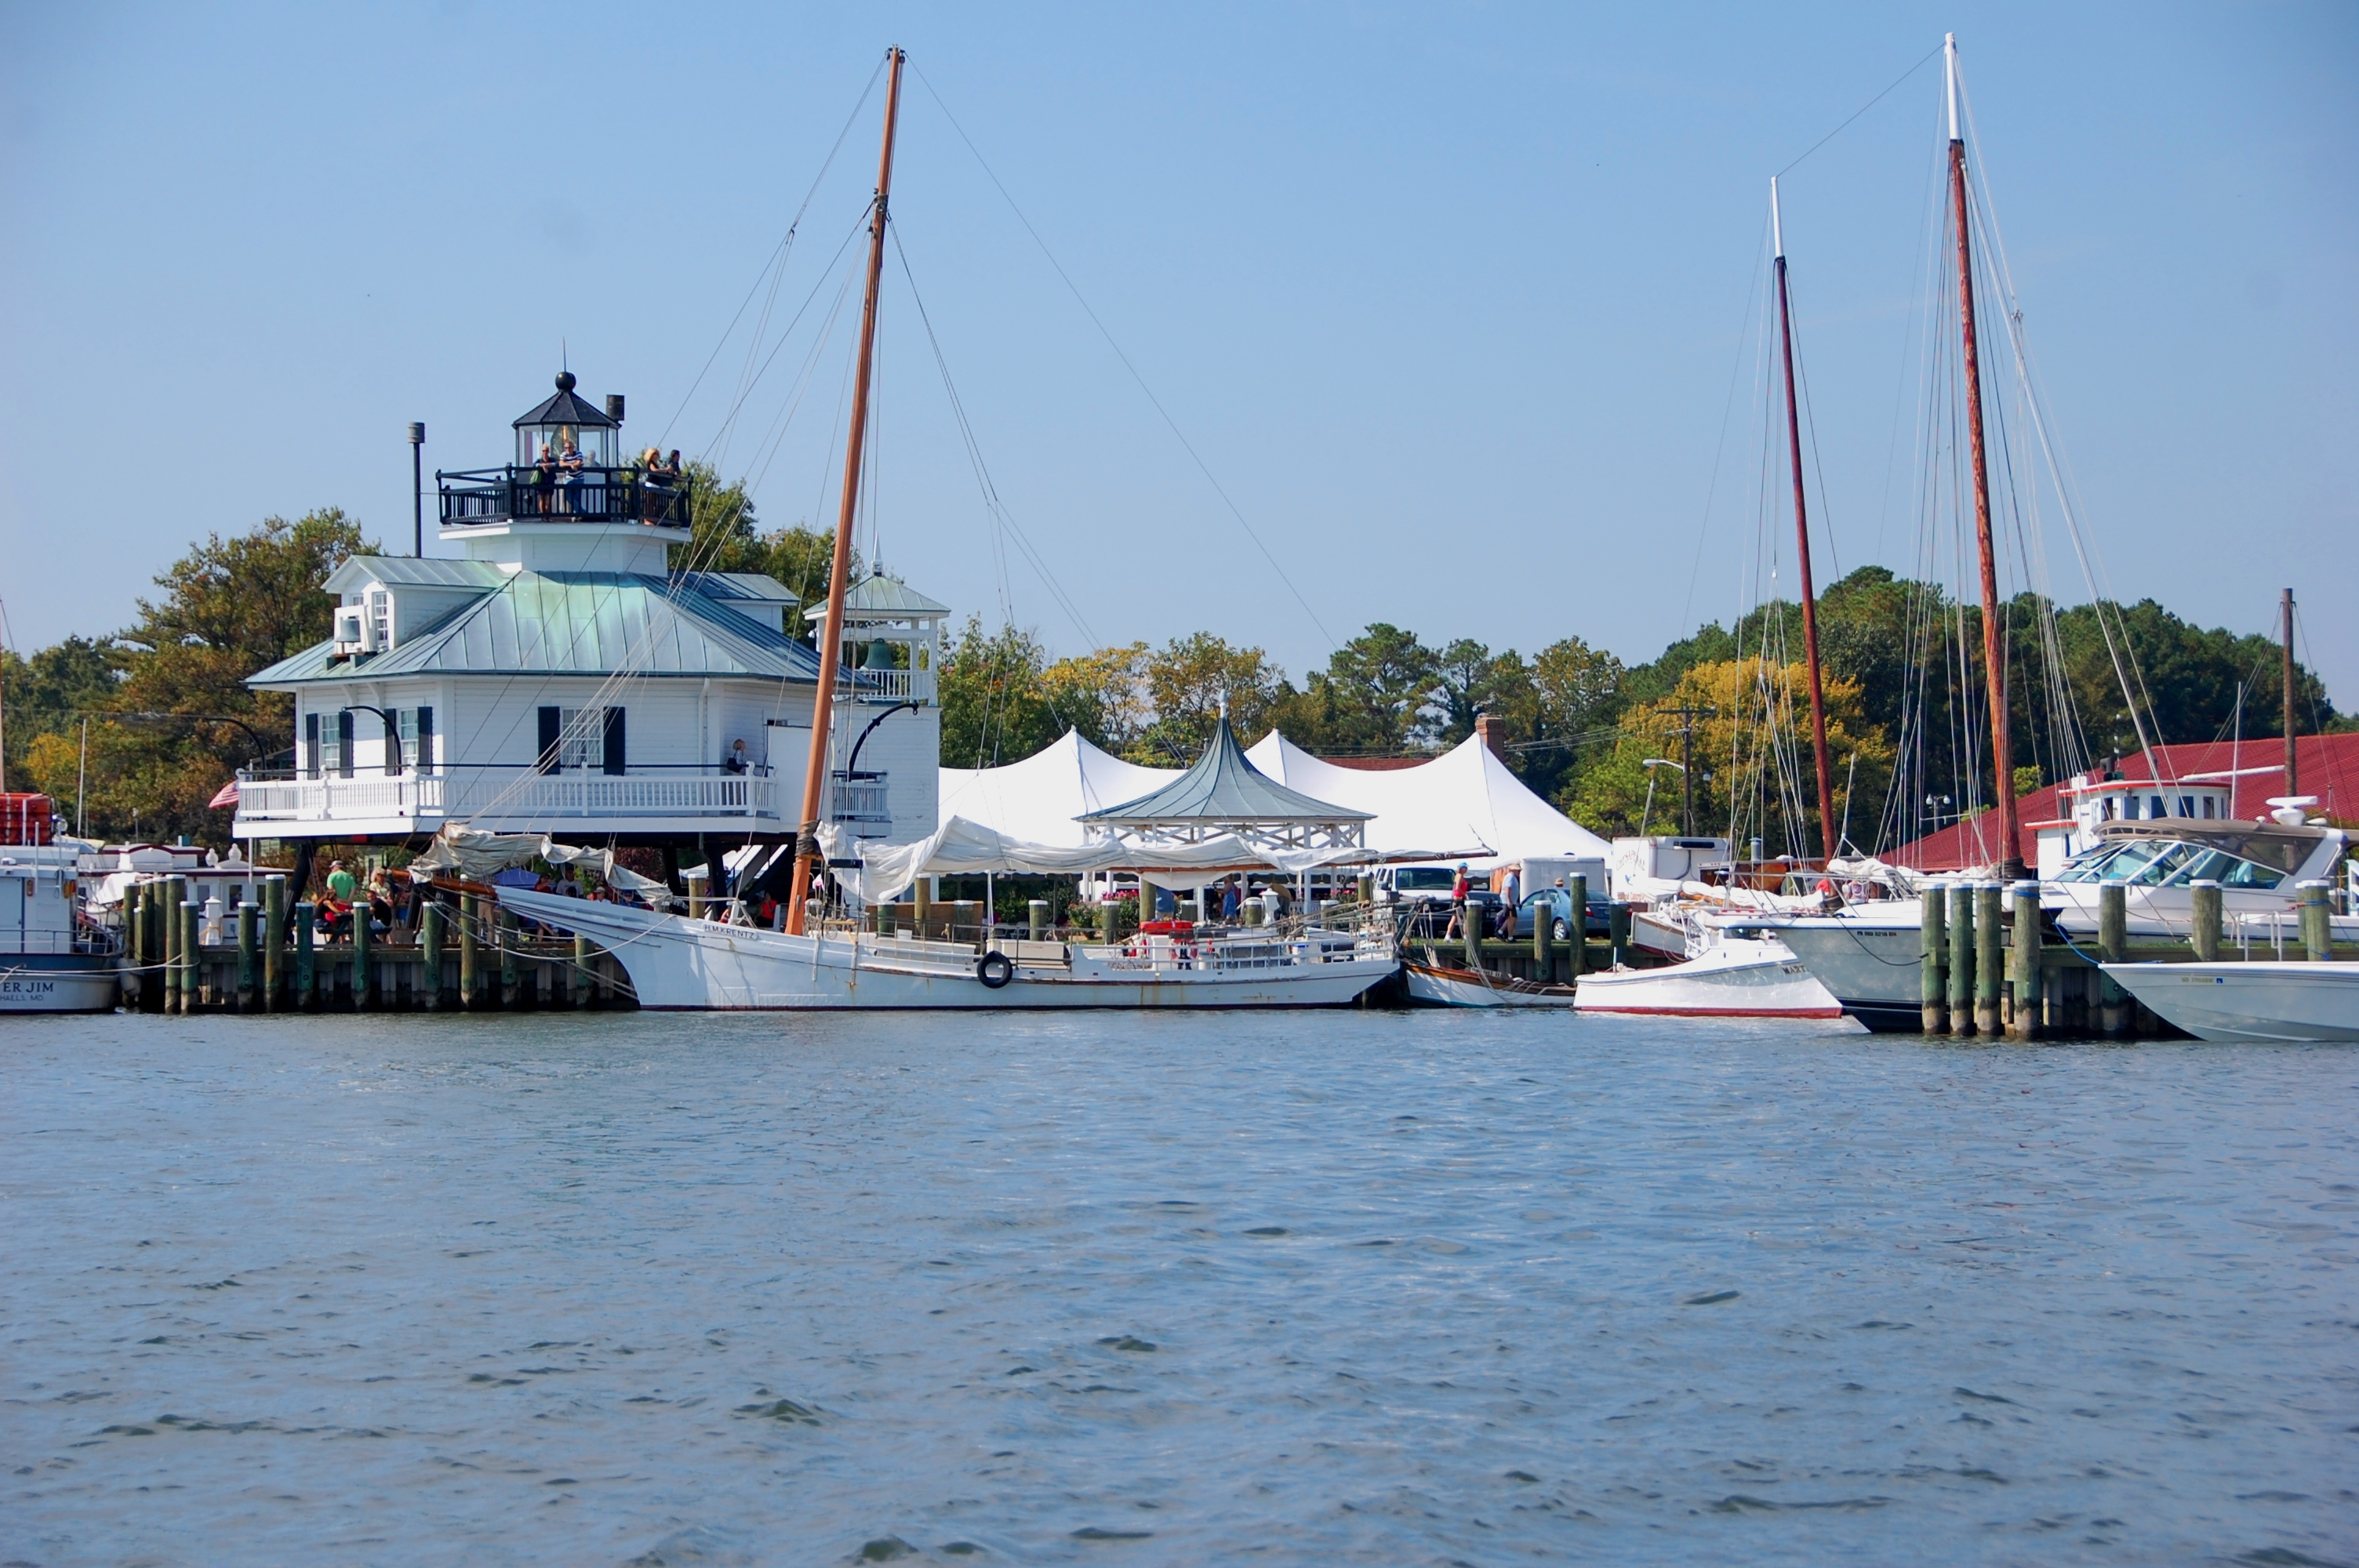 Community Day at the Chesapeake Bay Maritime Museum